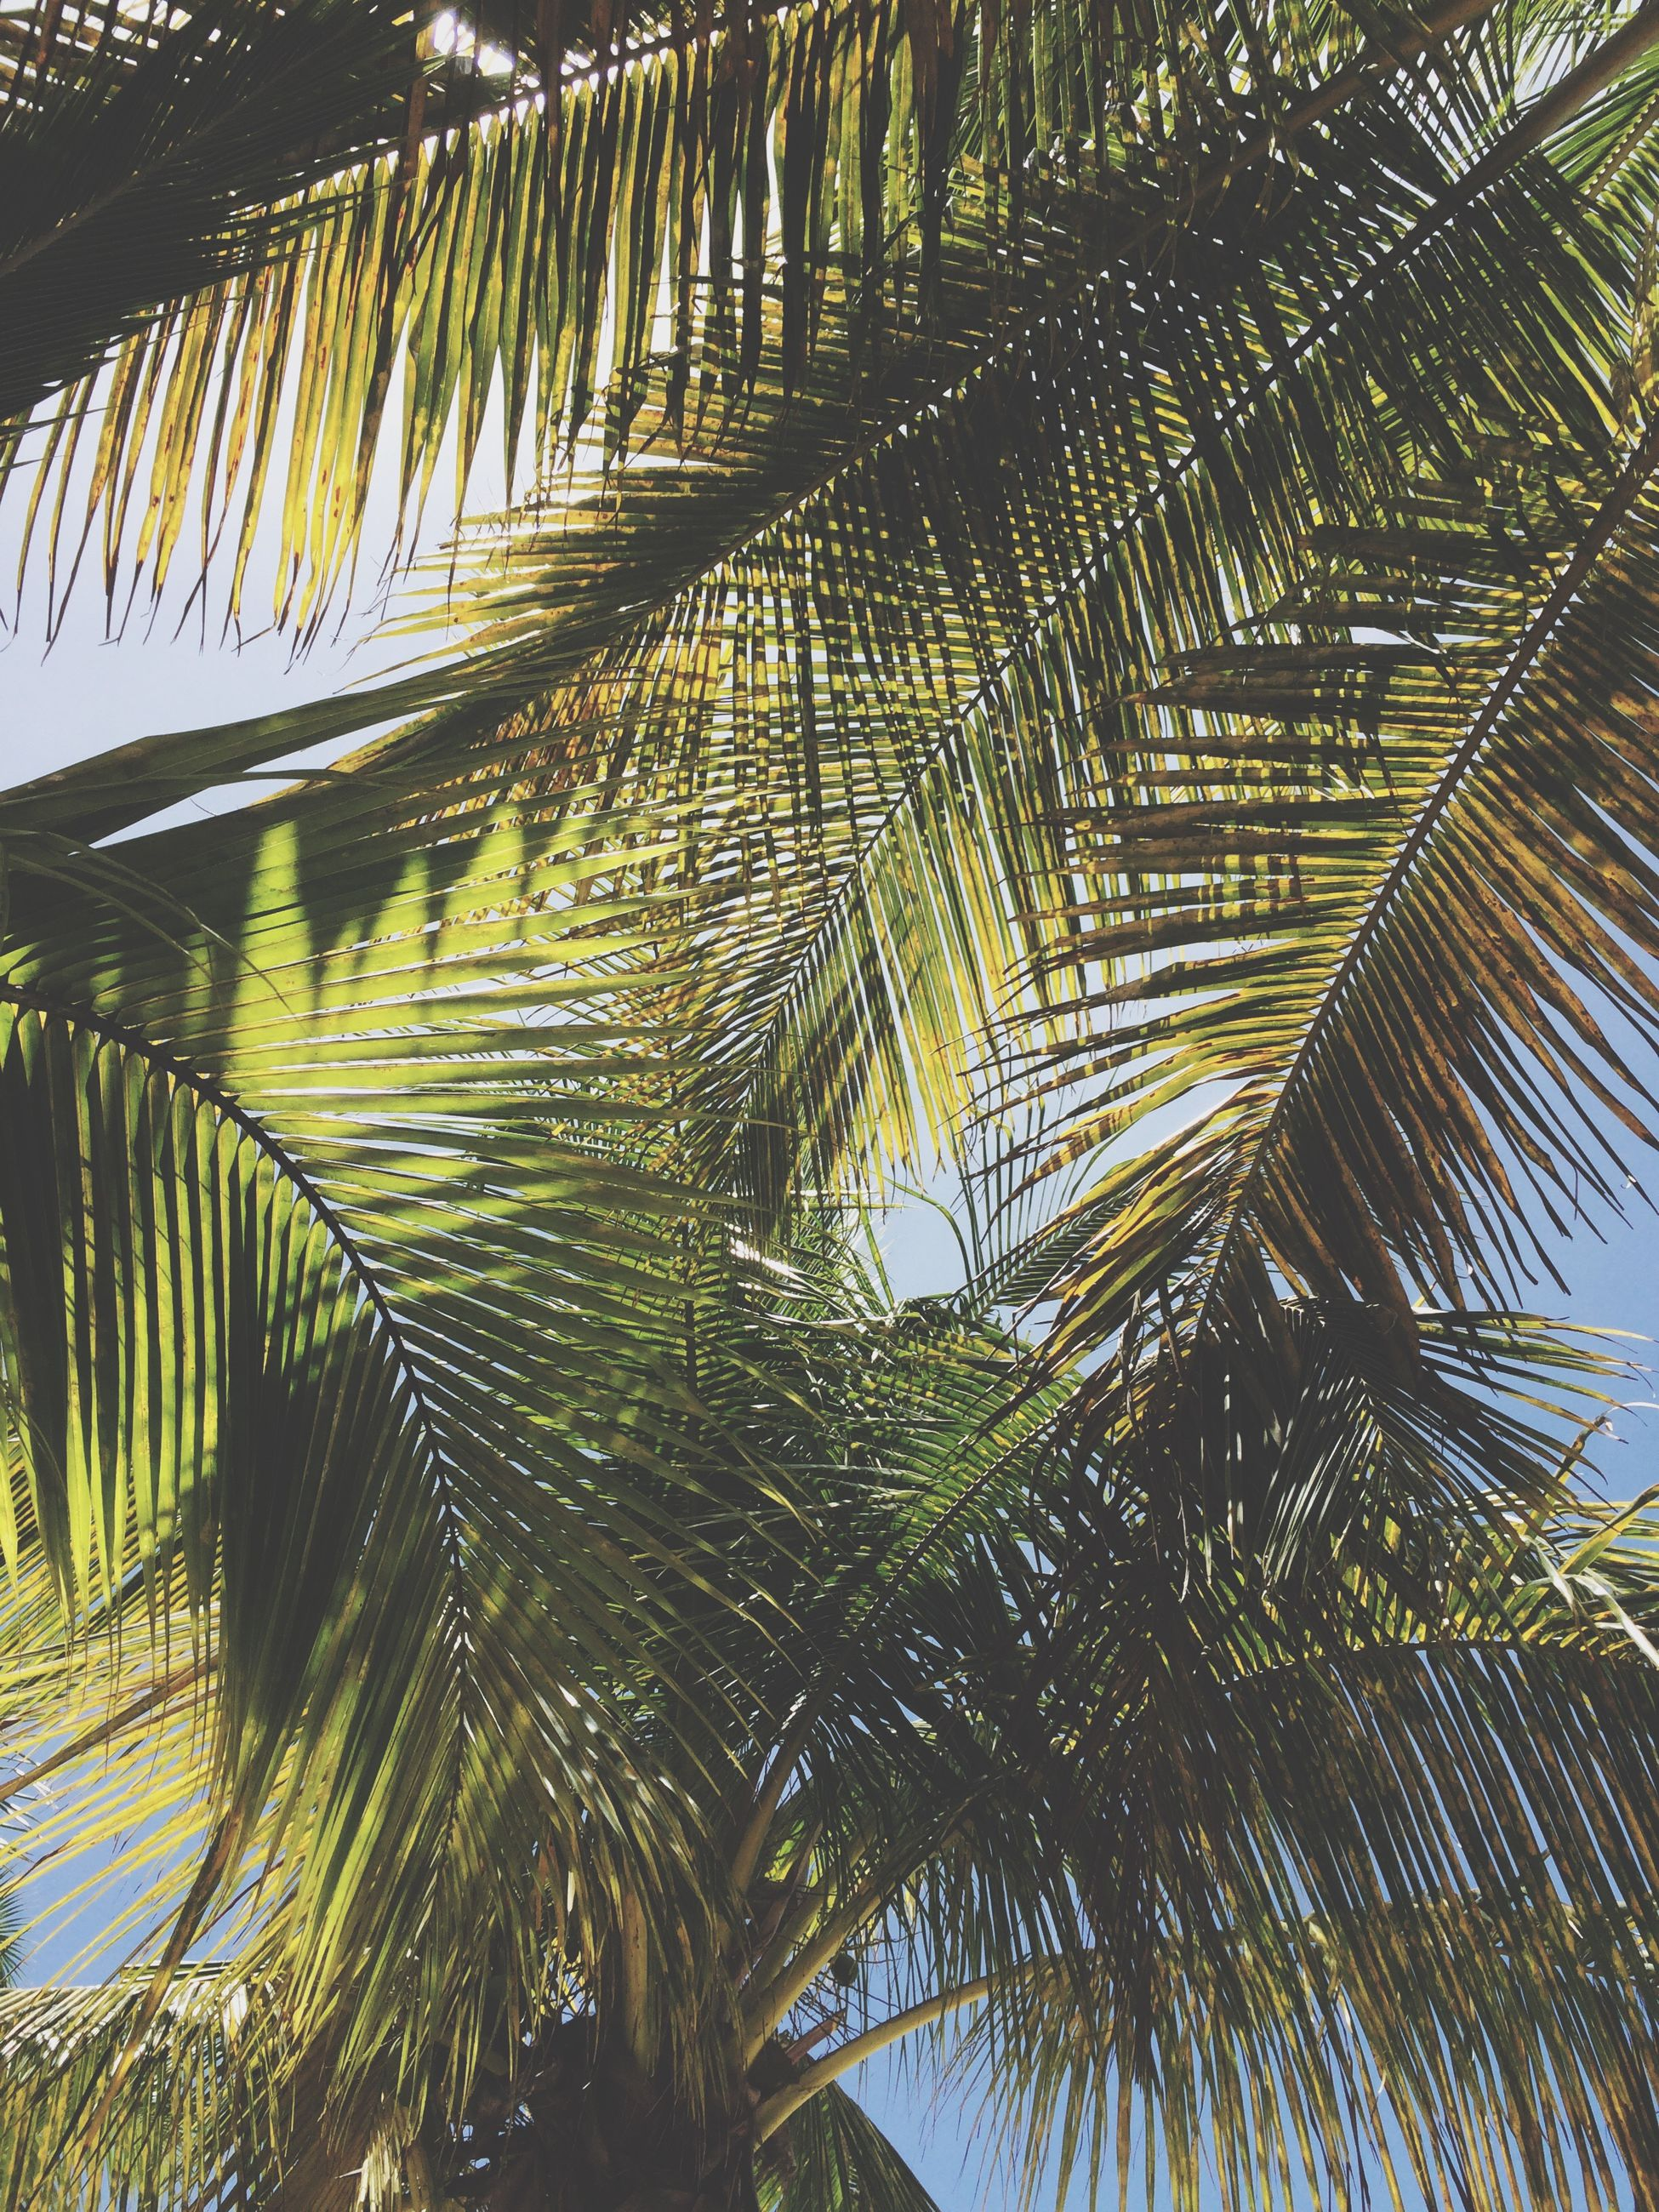 palm tree, tree, low angle view, growth, palm leaf, leaf, nature, tranquility, branch, green color, tree trunk, beauty in nature, tropical tree, tropical climate, day, coconut palm tree, clear sky, sunlight, outdoors, sky